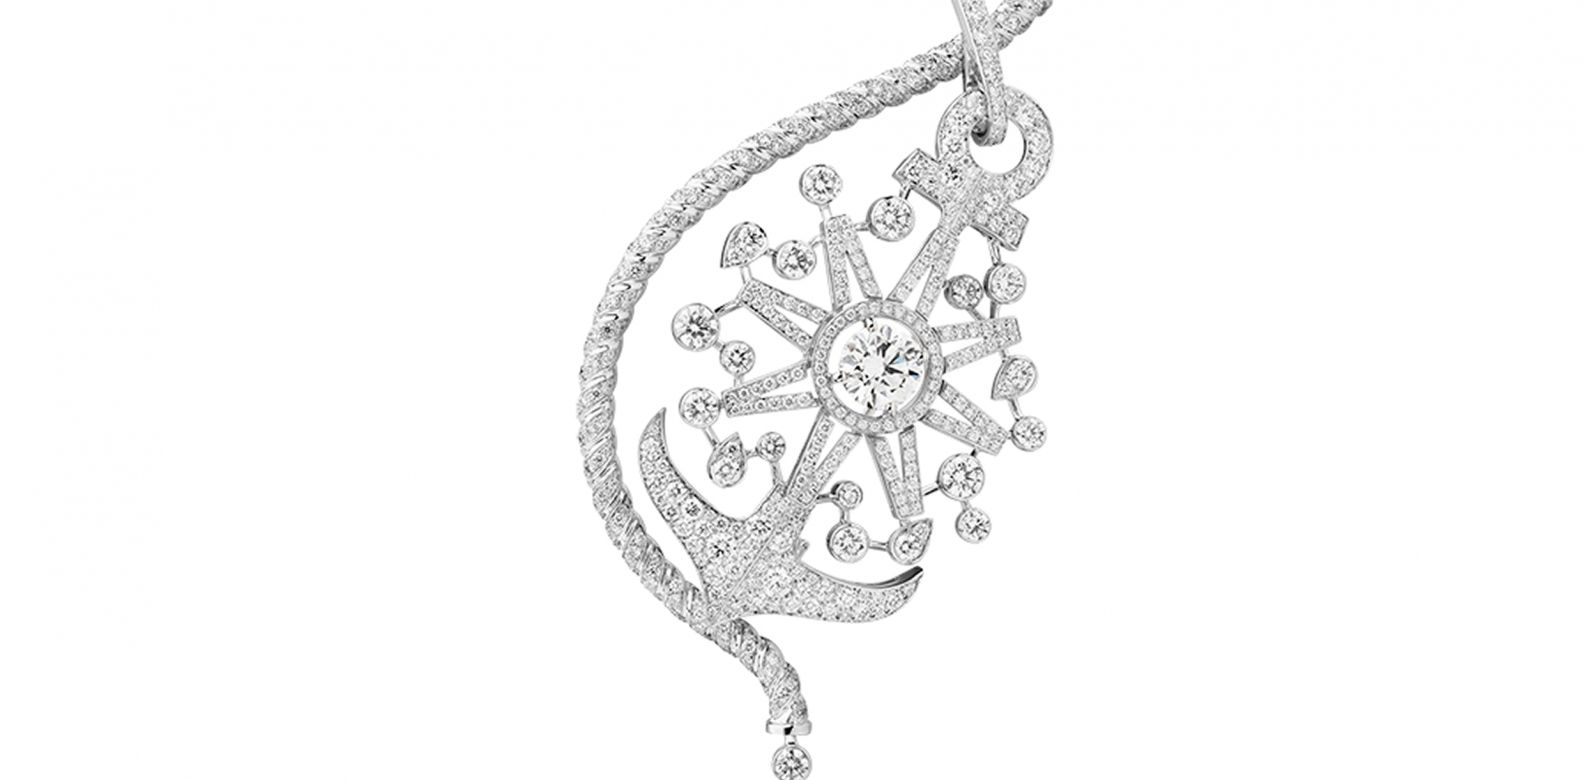 Yachting Day brooch by Chanel